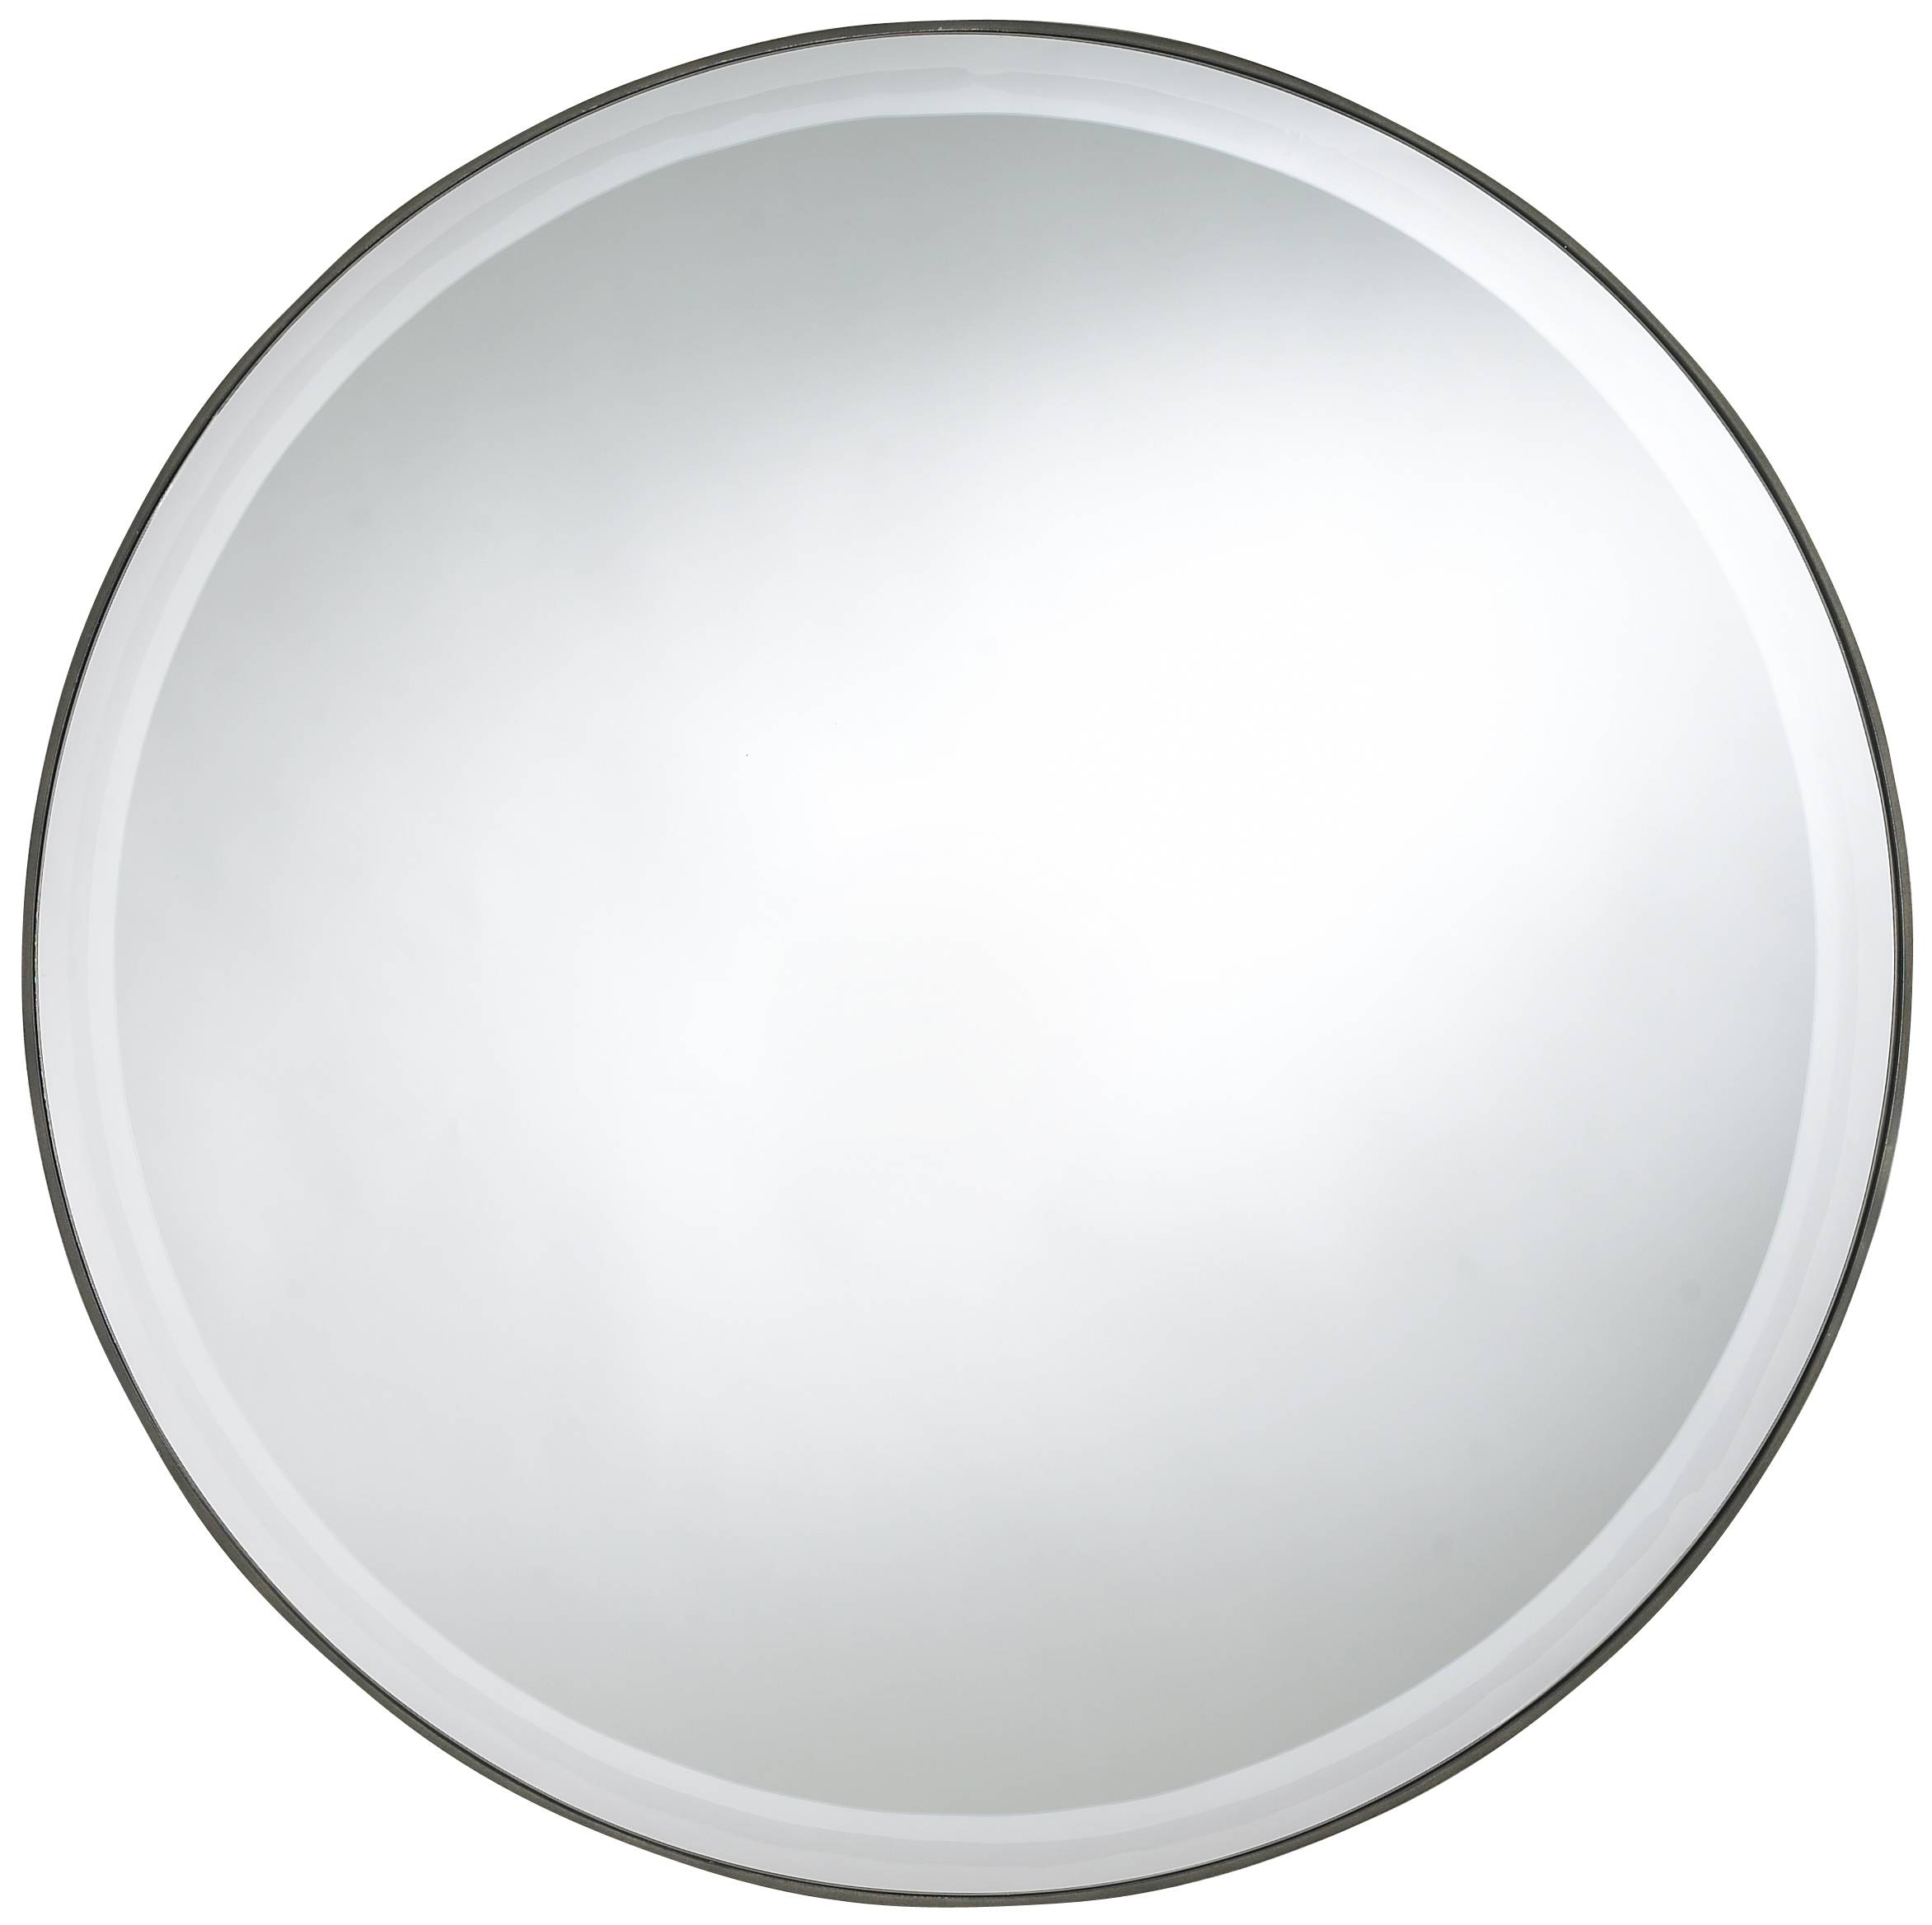 Round Mirror With Silver Steel Frame Of Great Ideas Of Large Round with regard to Large Black Round Mirrors (Image 13 of 15)